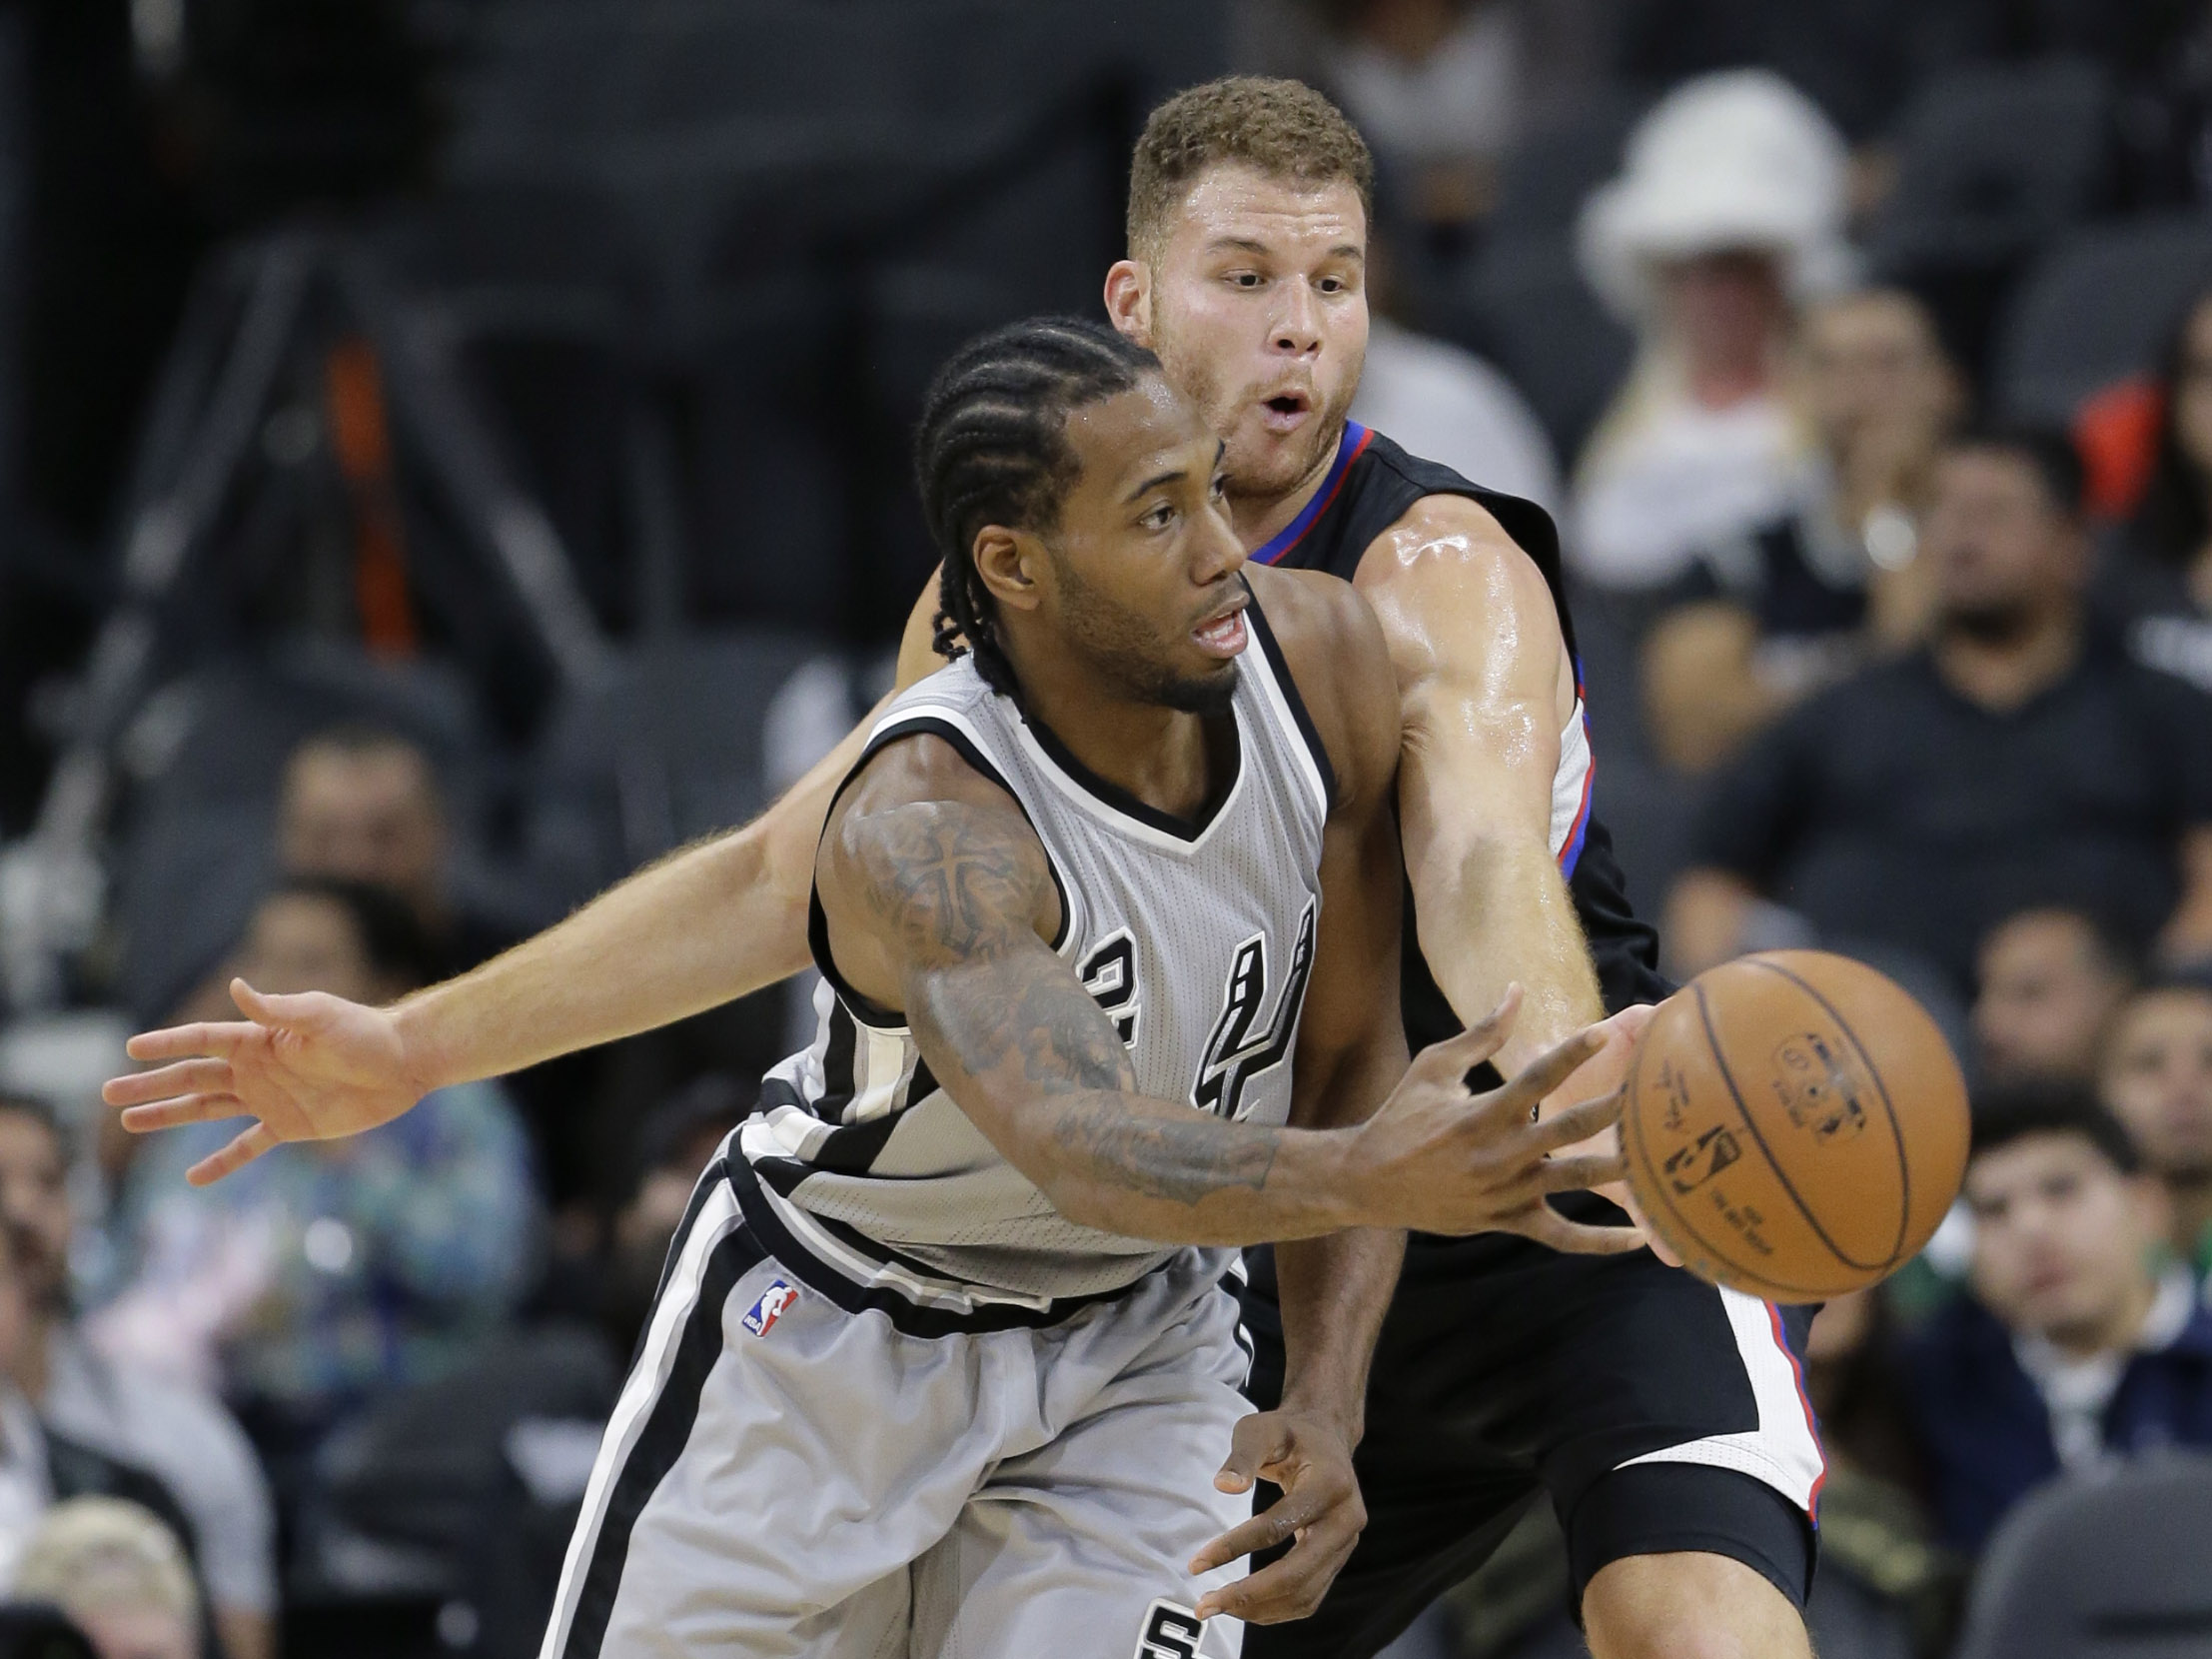 San Antonio Spurs forward Kawhi Leonard (2) is pressured by Los Angeles Clippers forward Blake Griffin during the first half of an NBA basketball game, Friday, Dec. 18, 2015, in San Antonio. (AP Photo/Eric Gay)